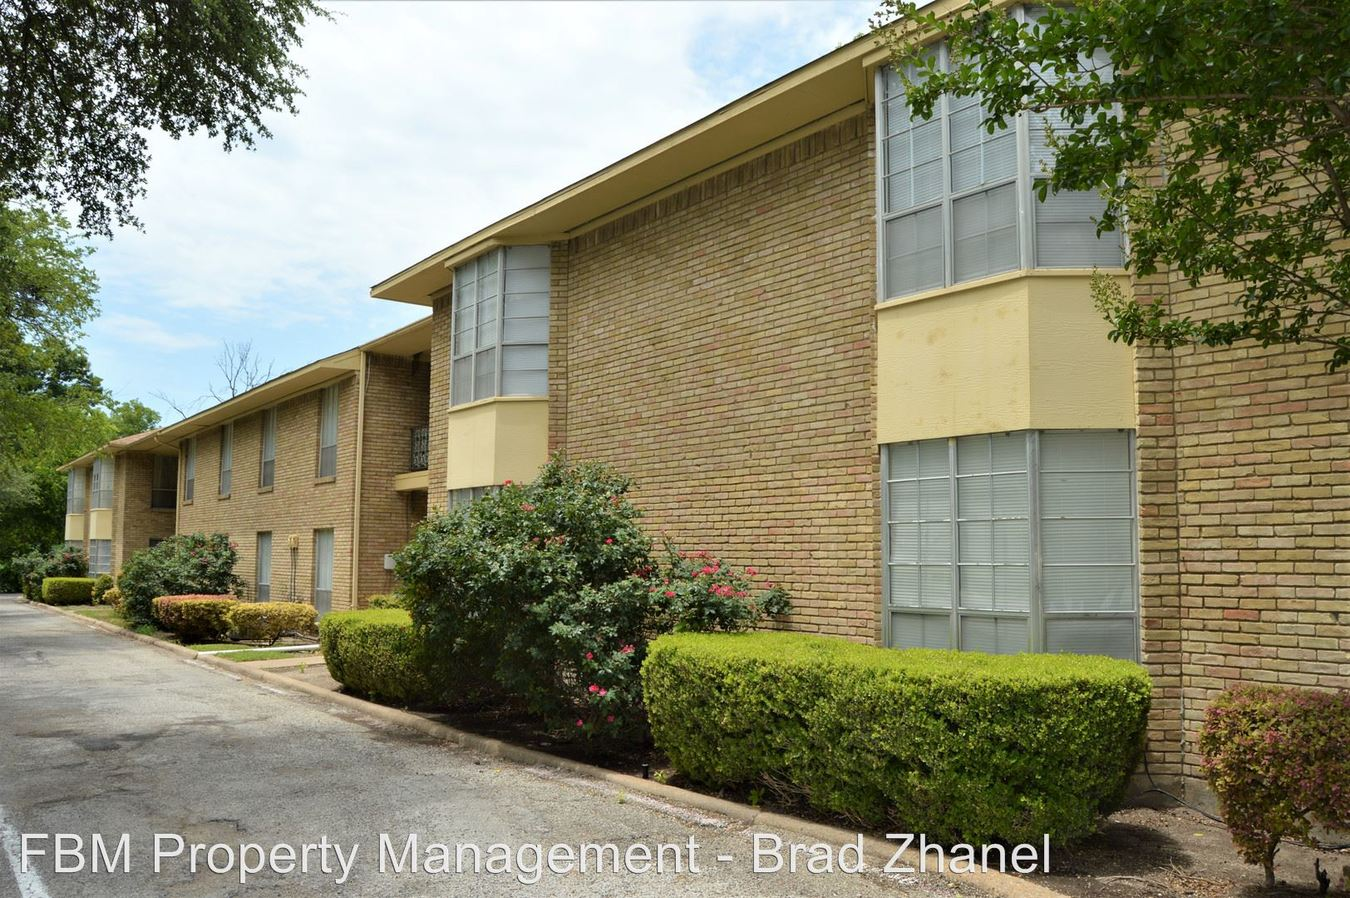 3 Bedrooms 2 Bathrooms Apartment for rent at 510 W Marvin Ave in Waxahachie, TX